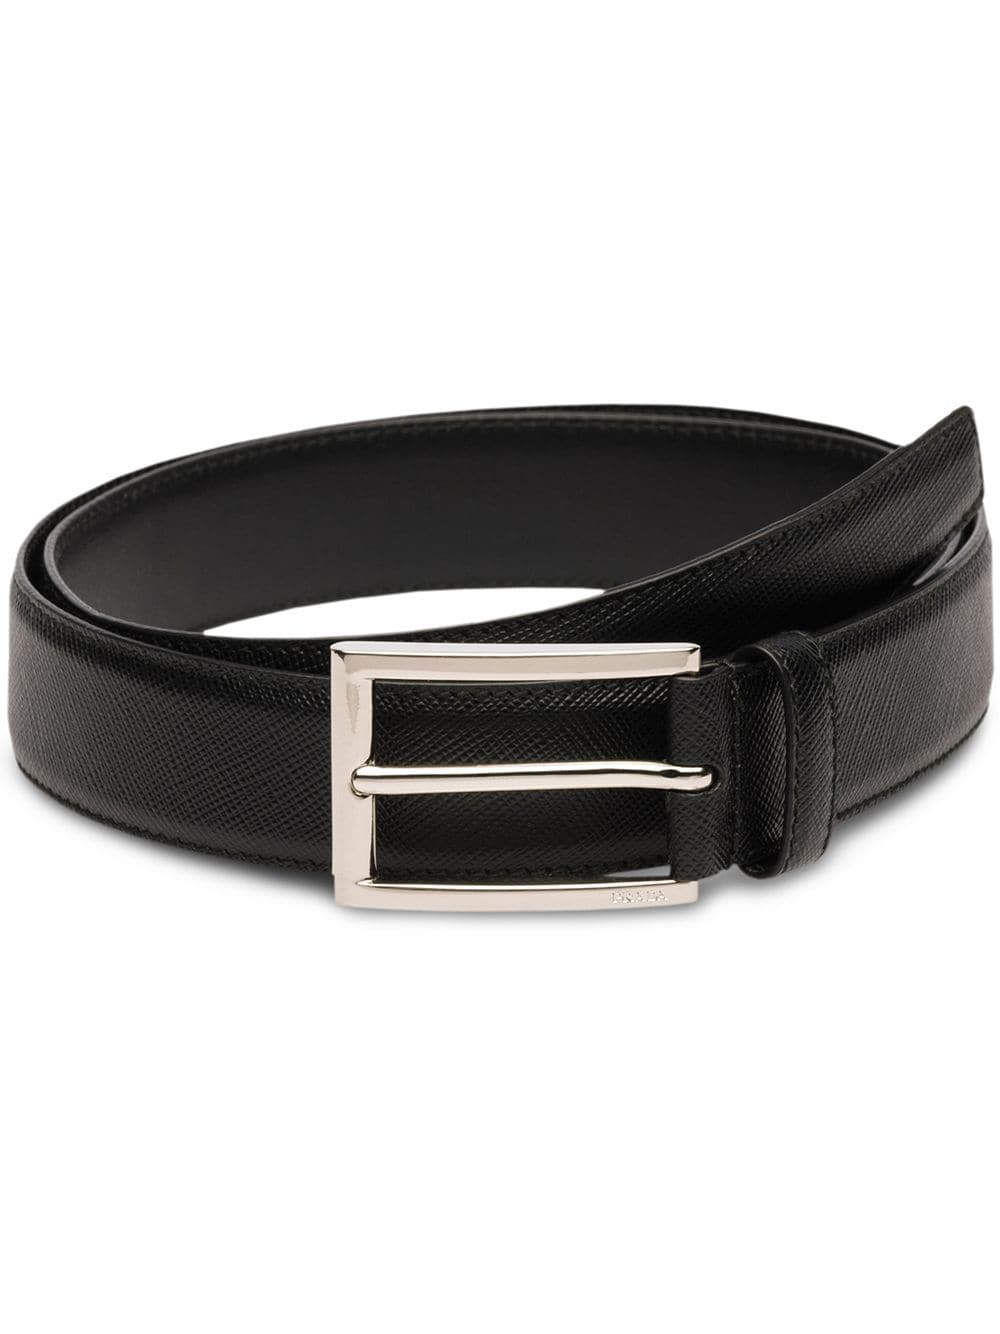 Prada classic buckled belt - Black - Glami.sk 20d42a2d858